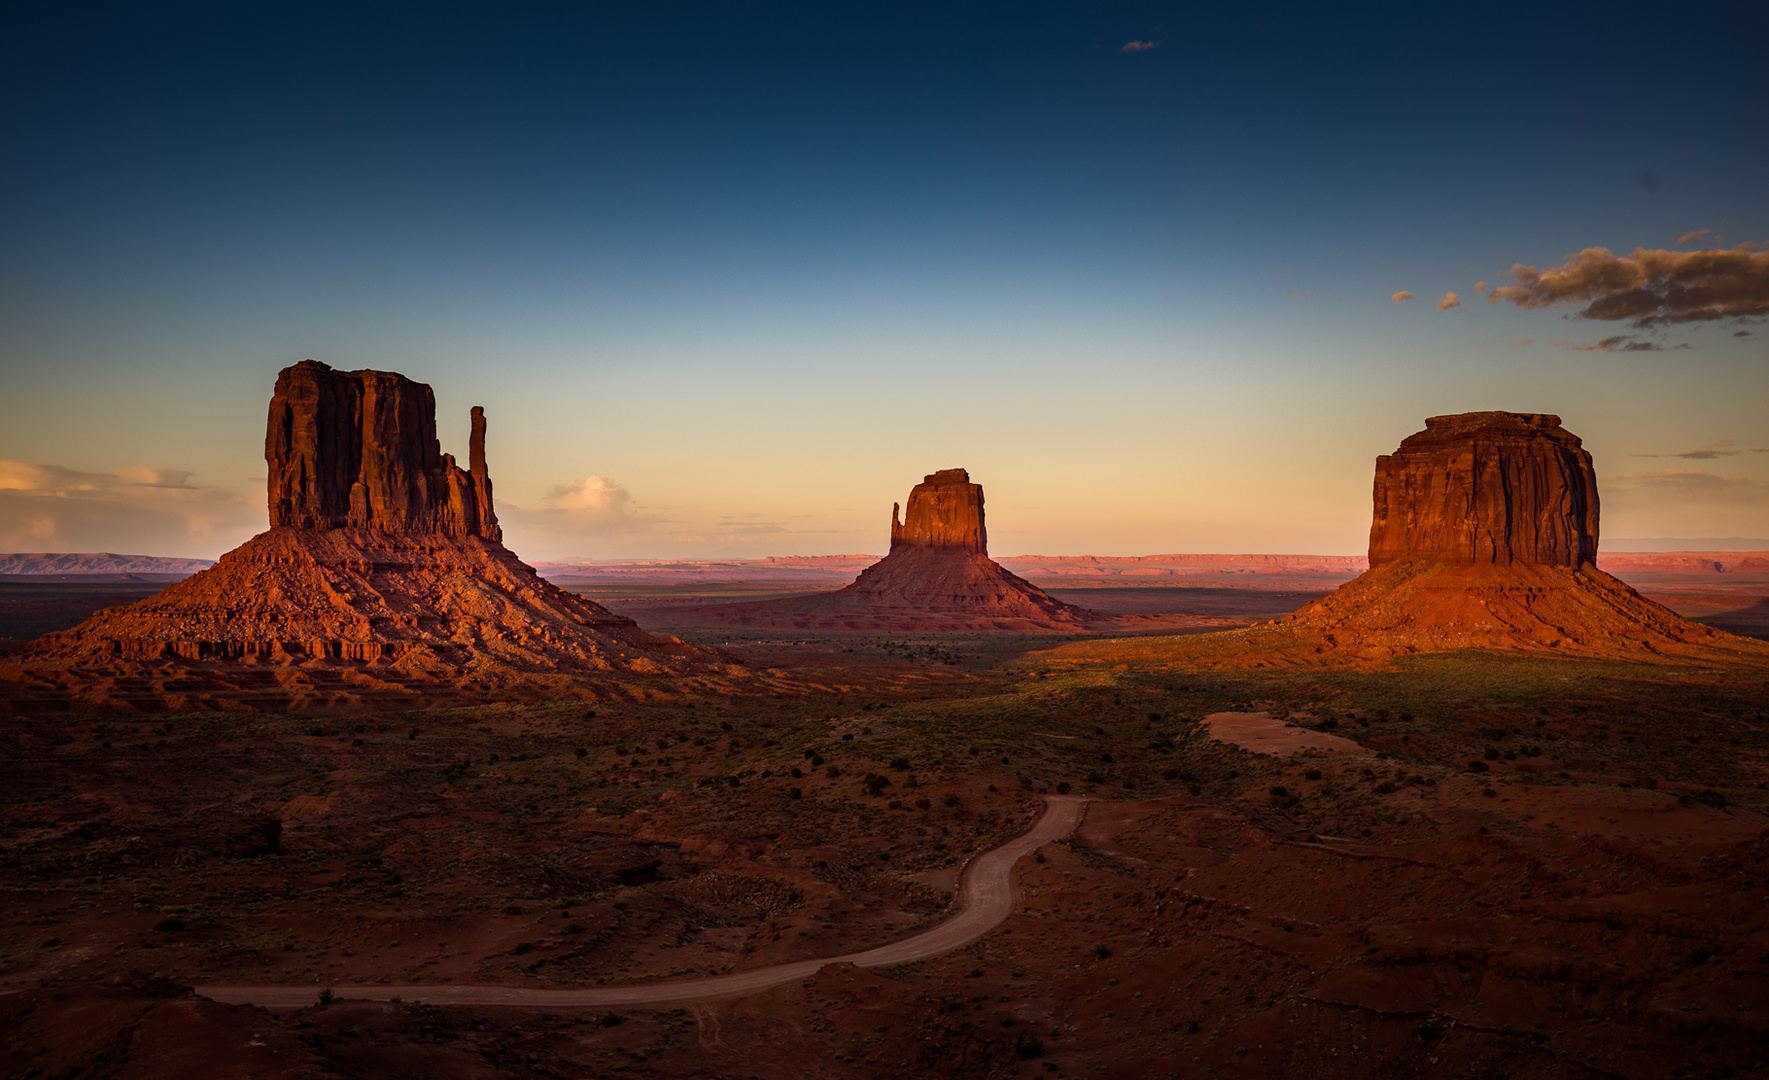 Sunset at Monument Valley